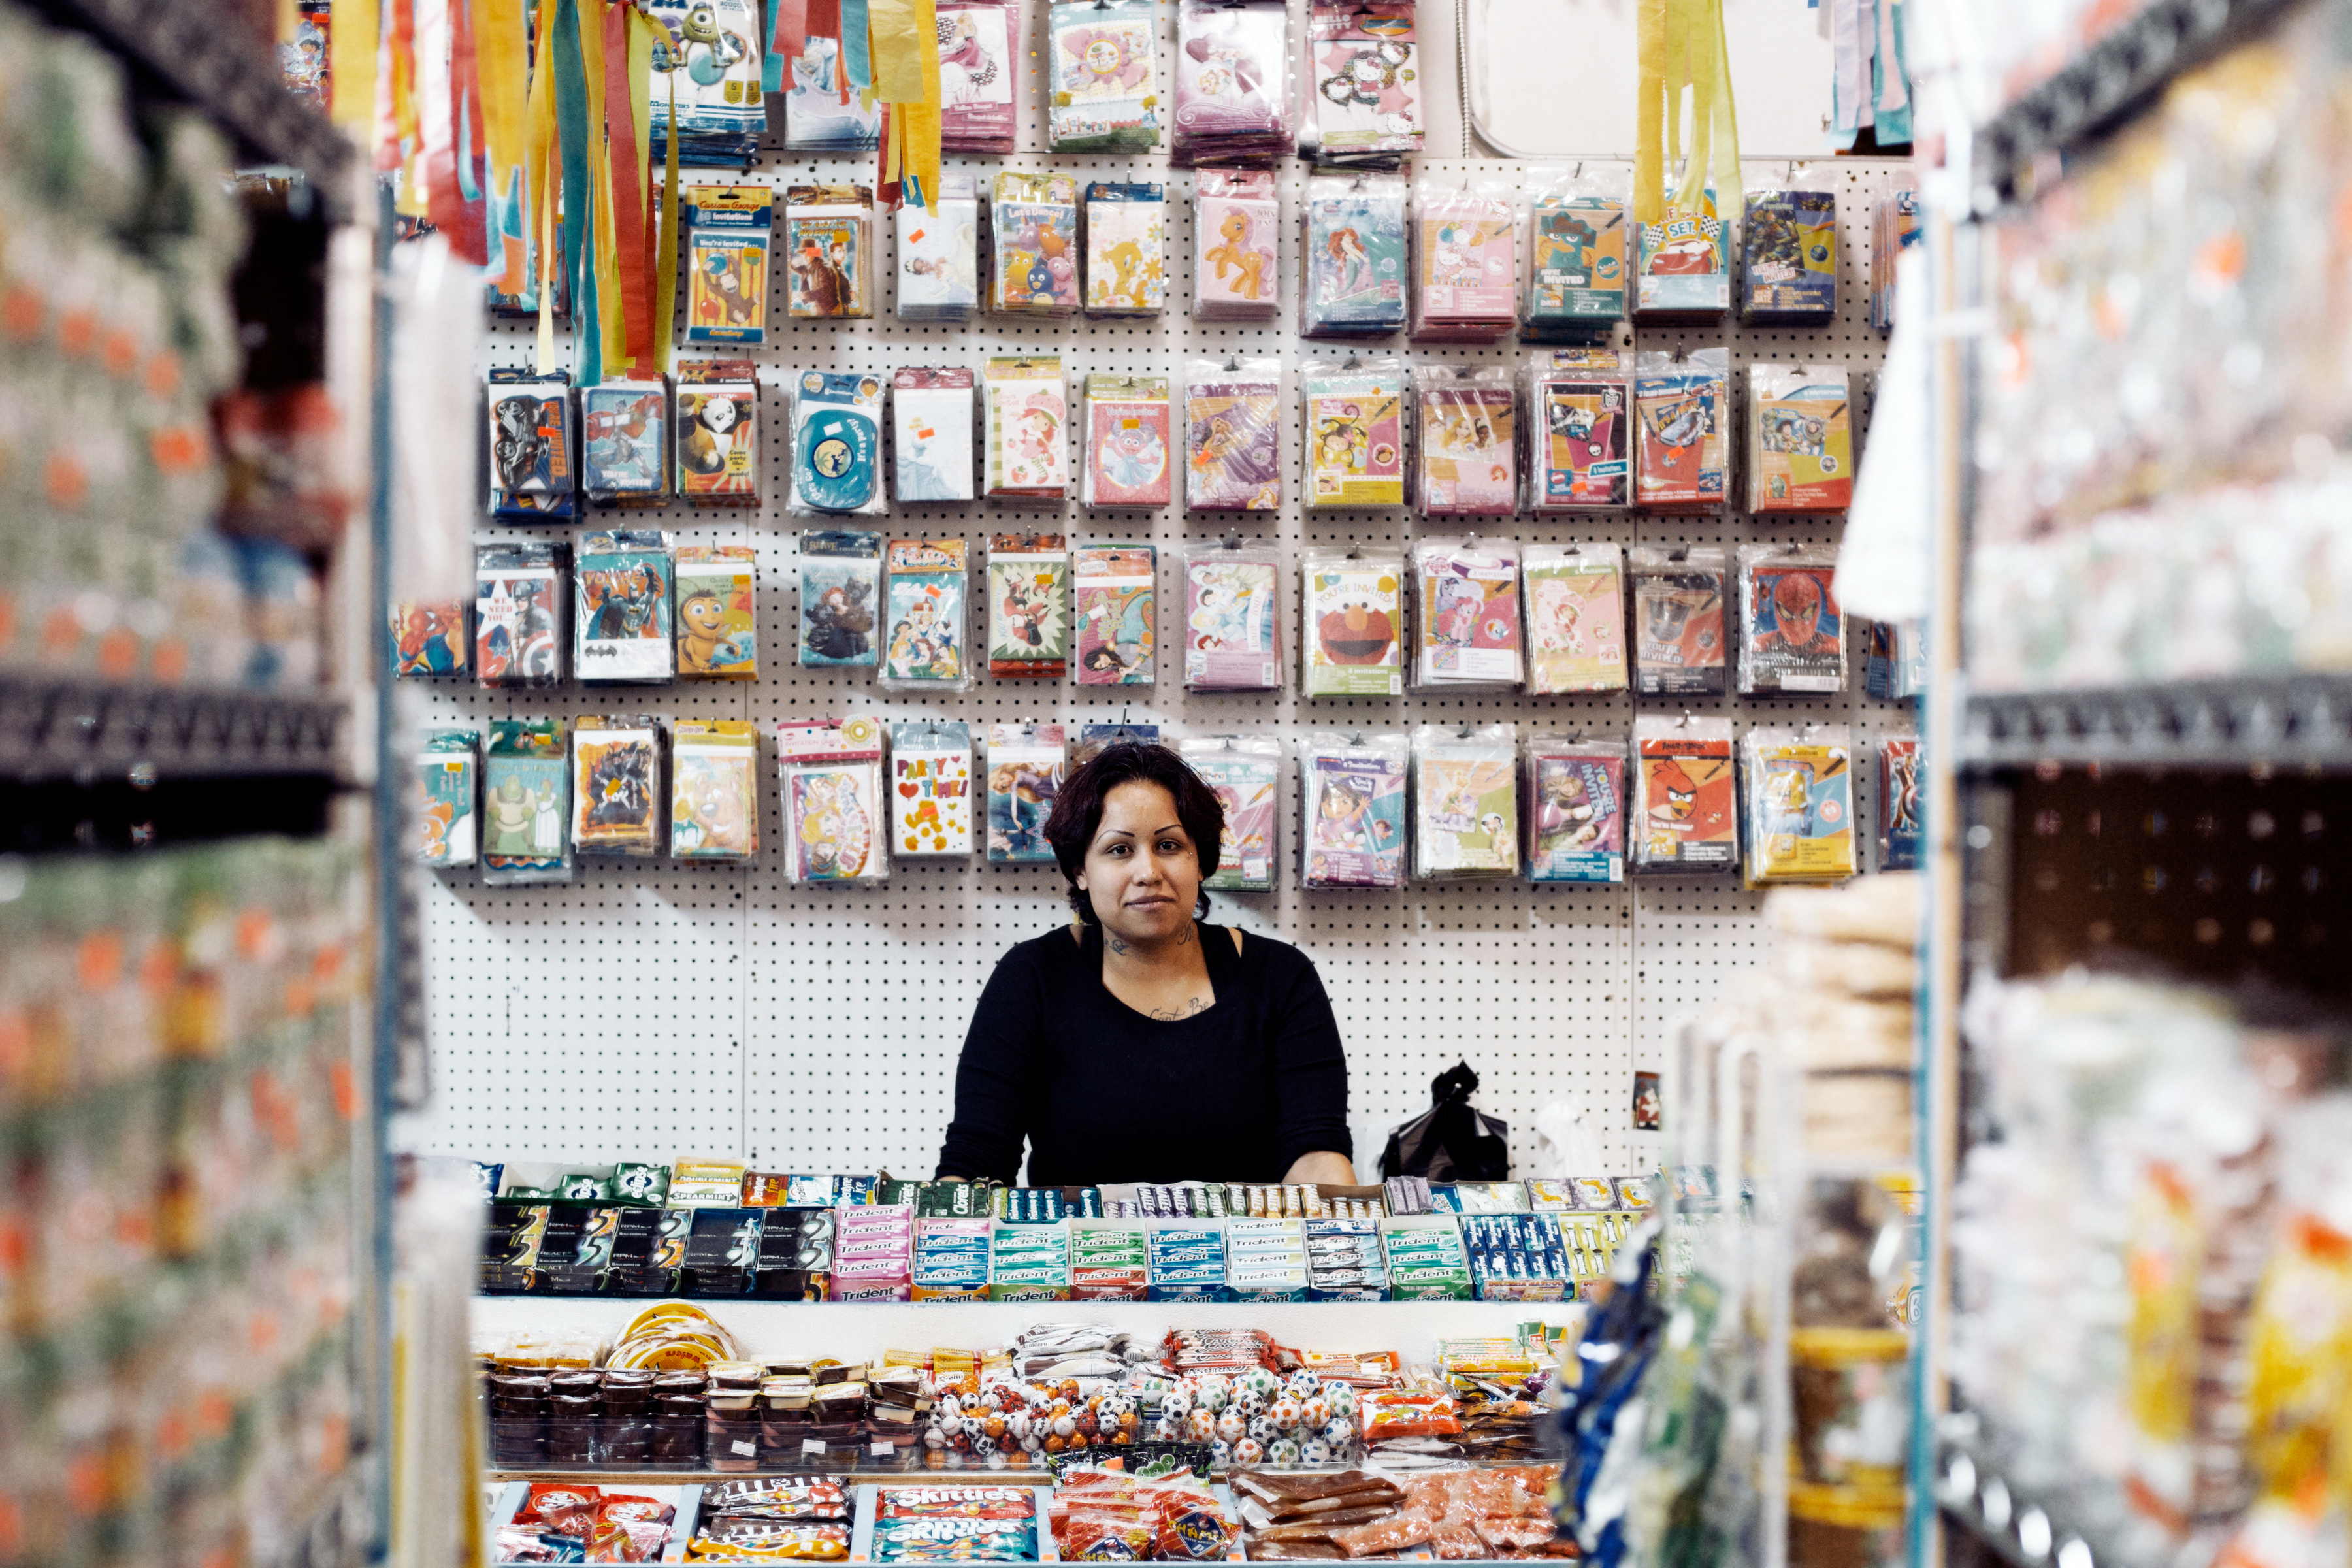 Esmerelda Walker works in a candy store specializing in Mexican candy at the mall. She has lived in the U.S. for 16 years.